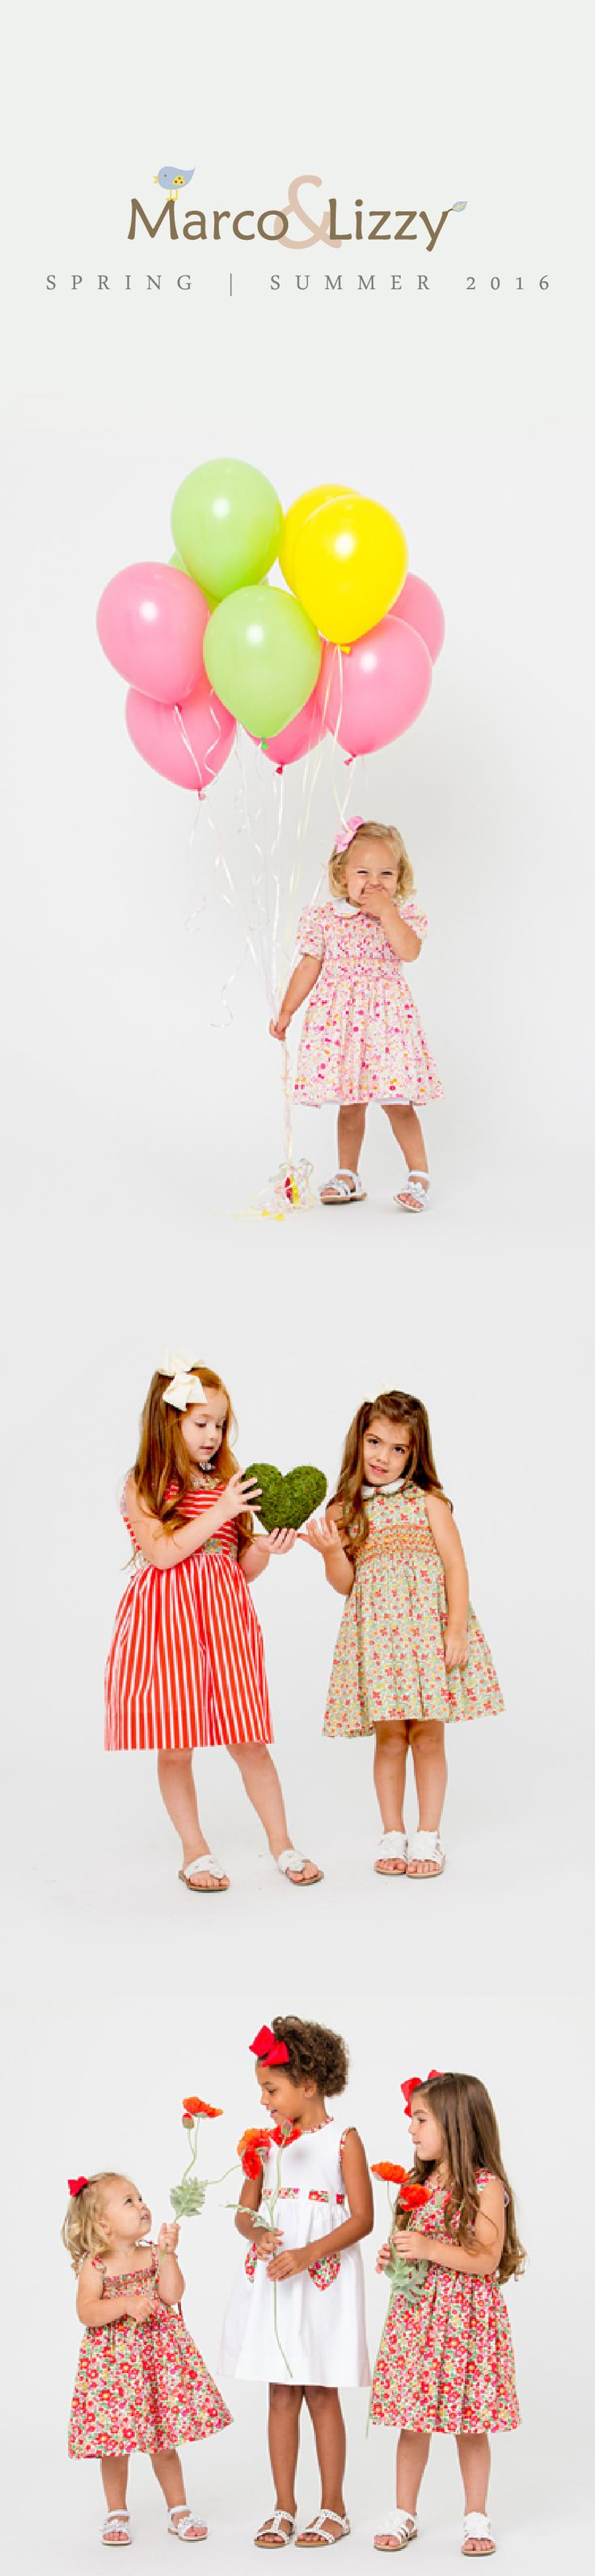 SPRING IS BLOOMING!  Fine quality children's smocked dresses, Jumper sets & more! Only at www.marcoandlizzy.com